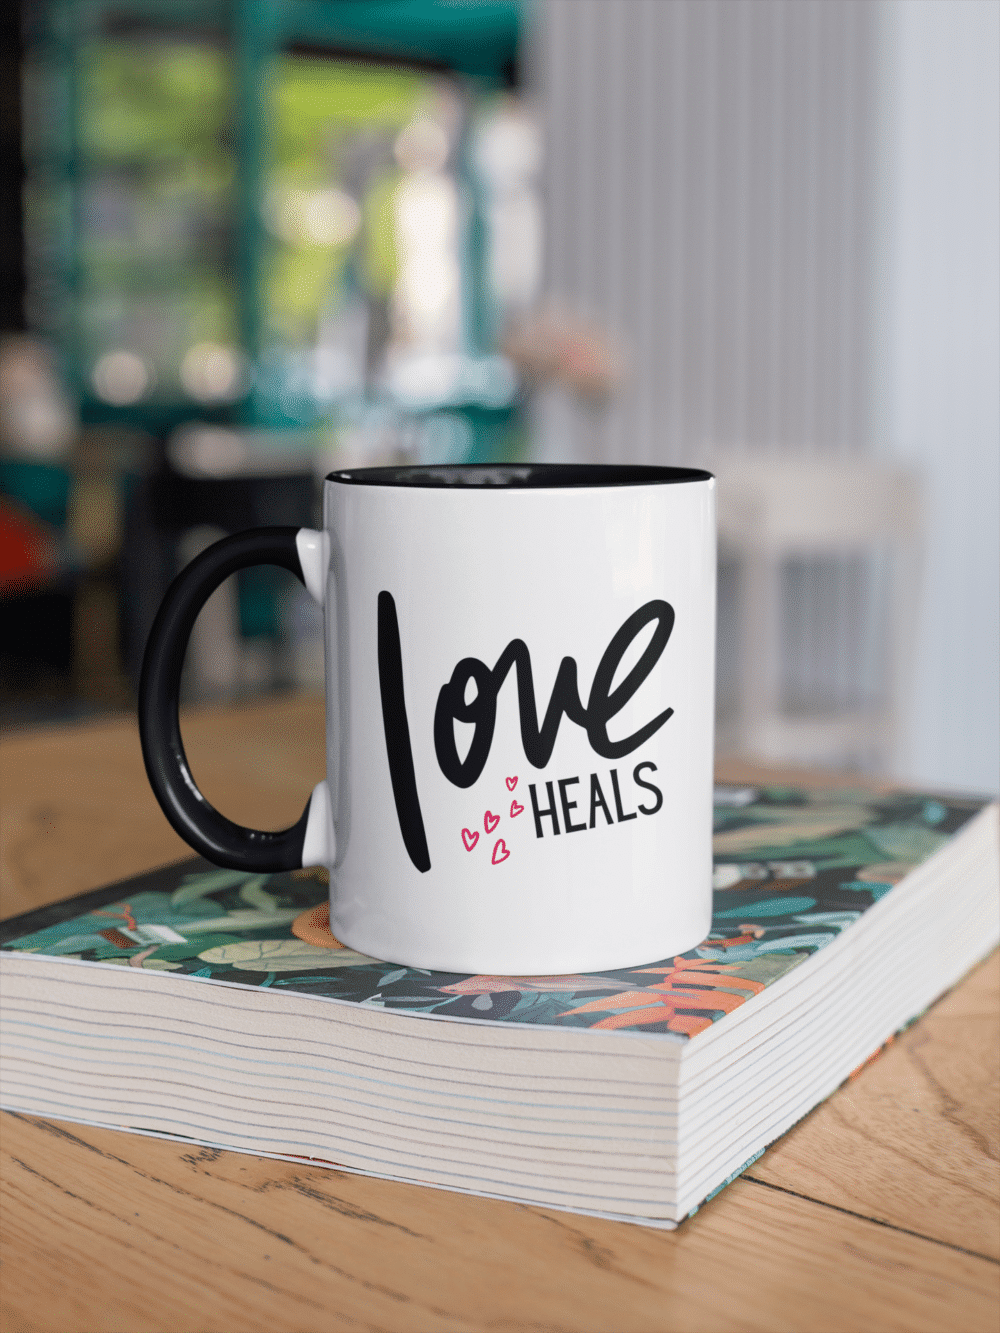 Love Heals black and white mug resting on a book in a cafe